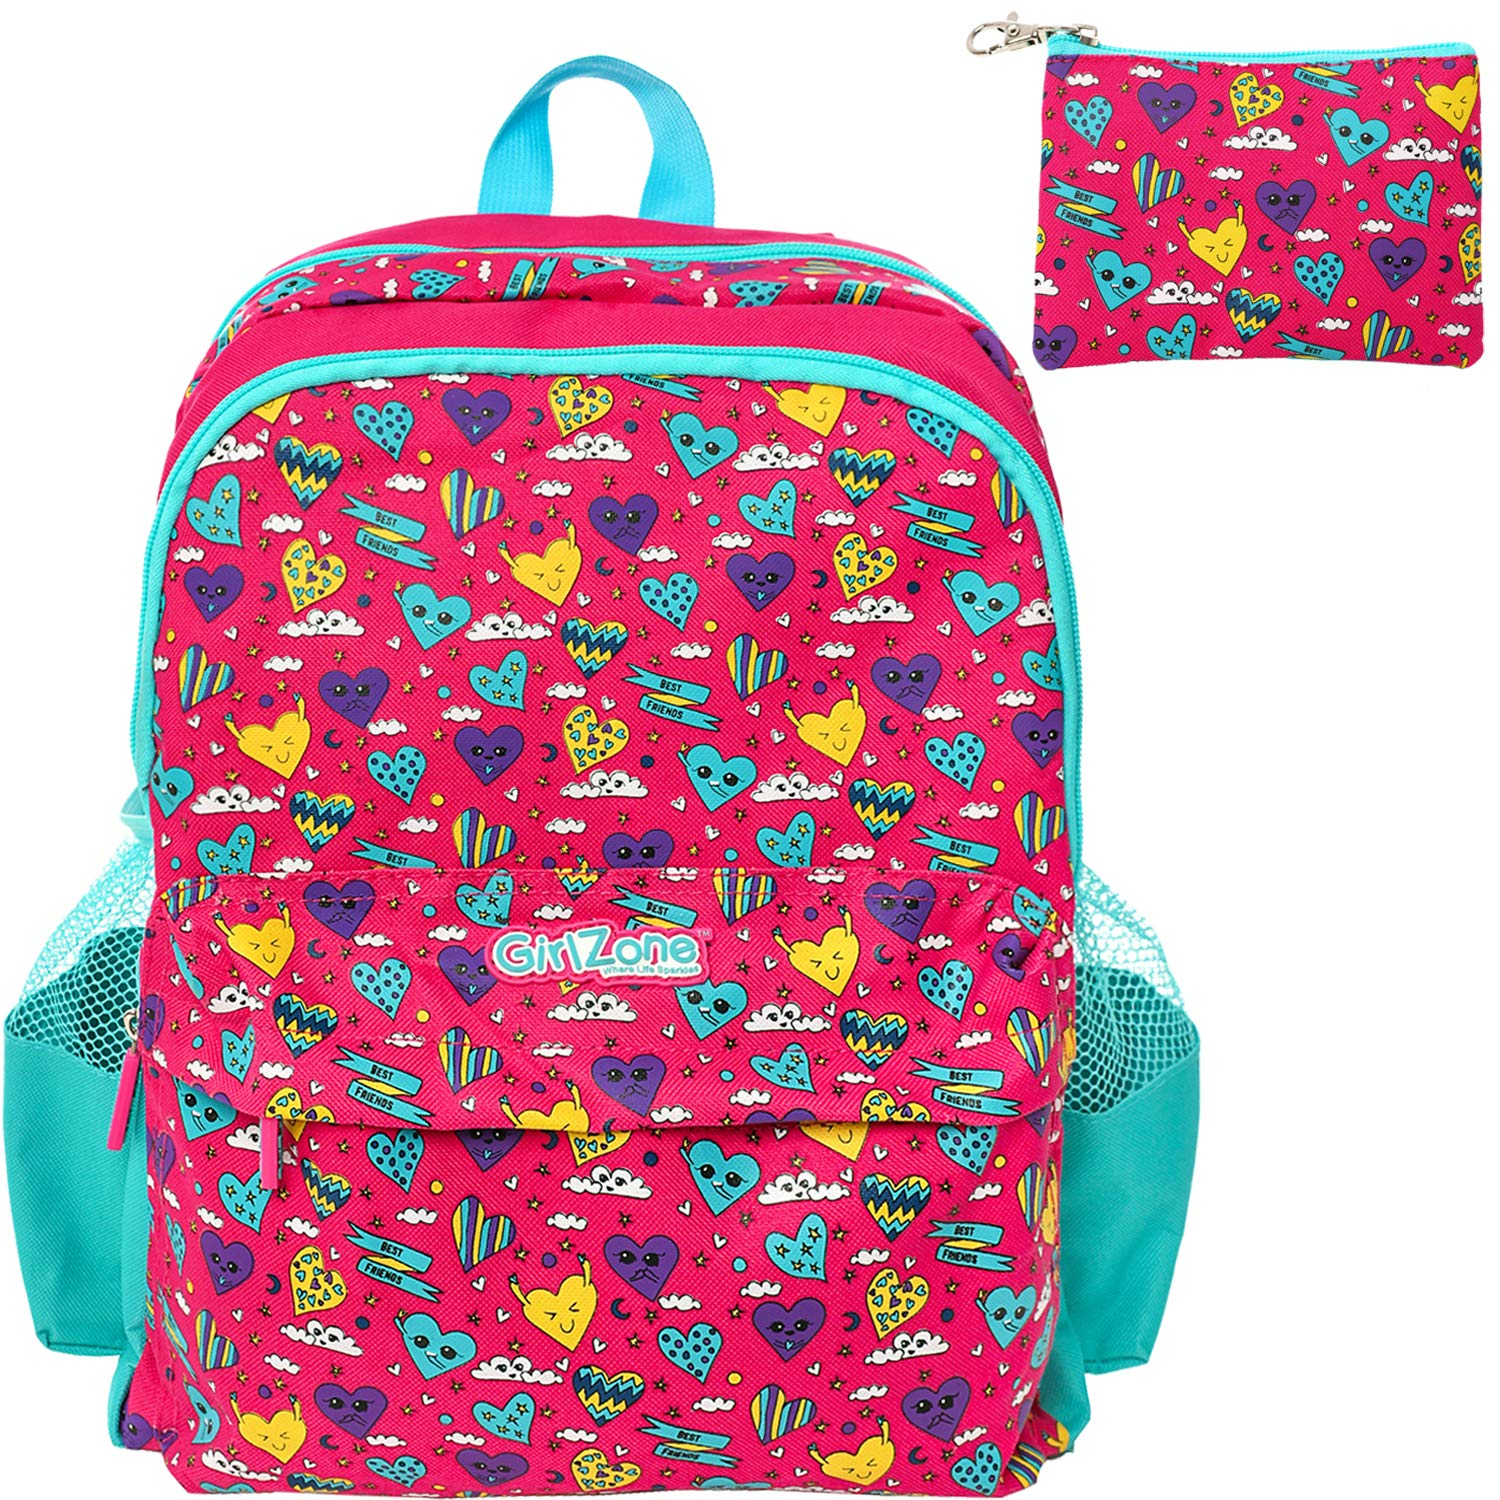 BACKPACK FOR GIRLS: Fun & Funky School Bag, Rucksack For Kids, Toddlers, Kindergarten. Birthday, Gifts, Presents For Girls Age 3 4 5 6 7 8 9 10. (Pink Pink)